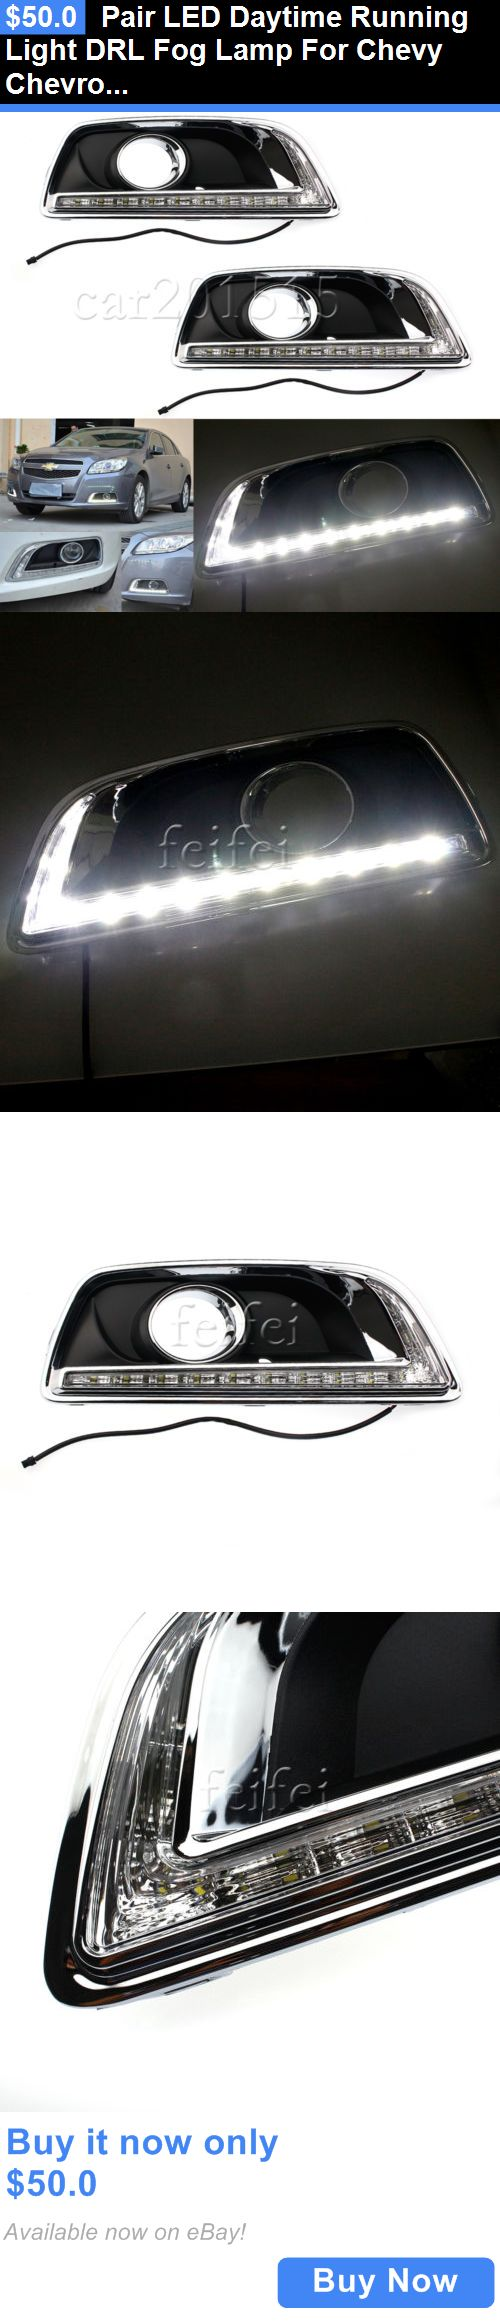 Motors Parts And Accessories: Pair Led Daytime Running Light Drl Fog Lamp For Chevy Chevrolet Malibu 2012-2014 BUY IT NOW ONLY: $50.0